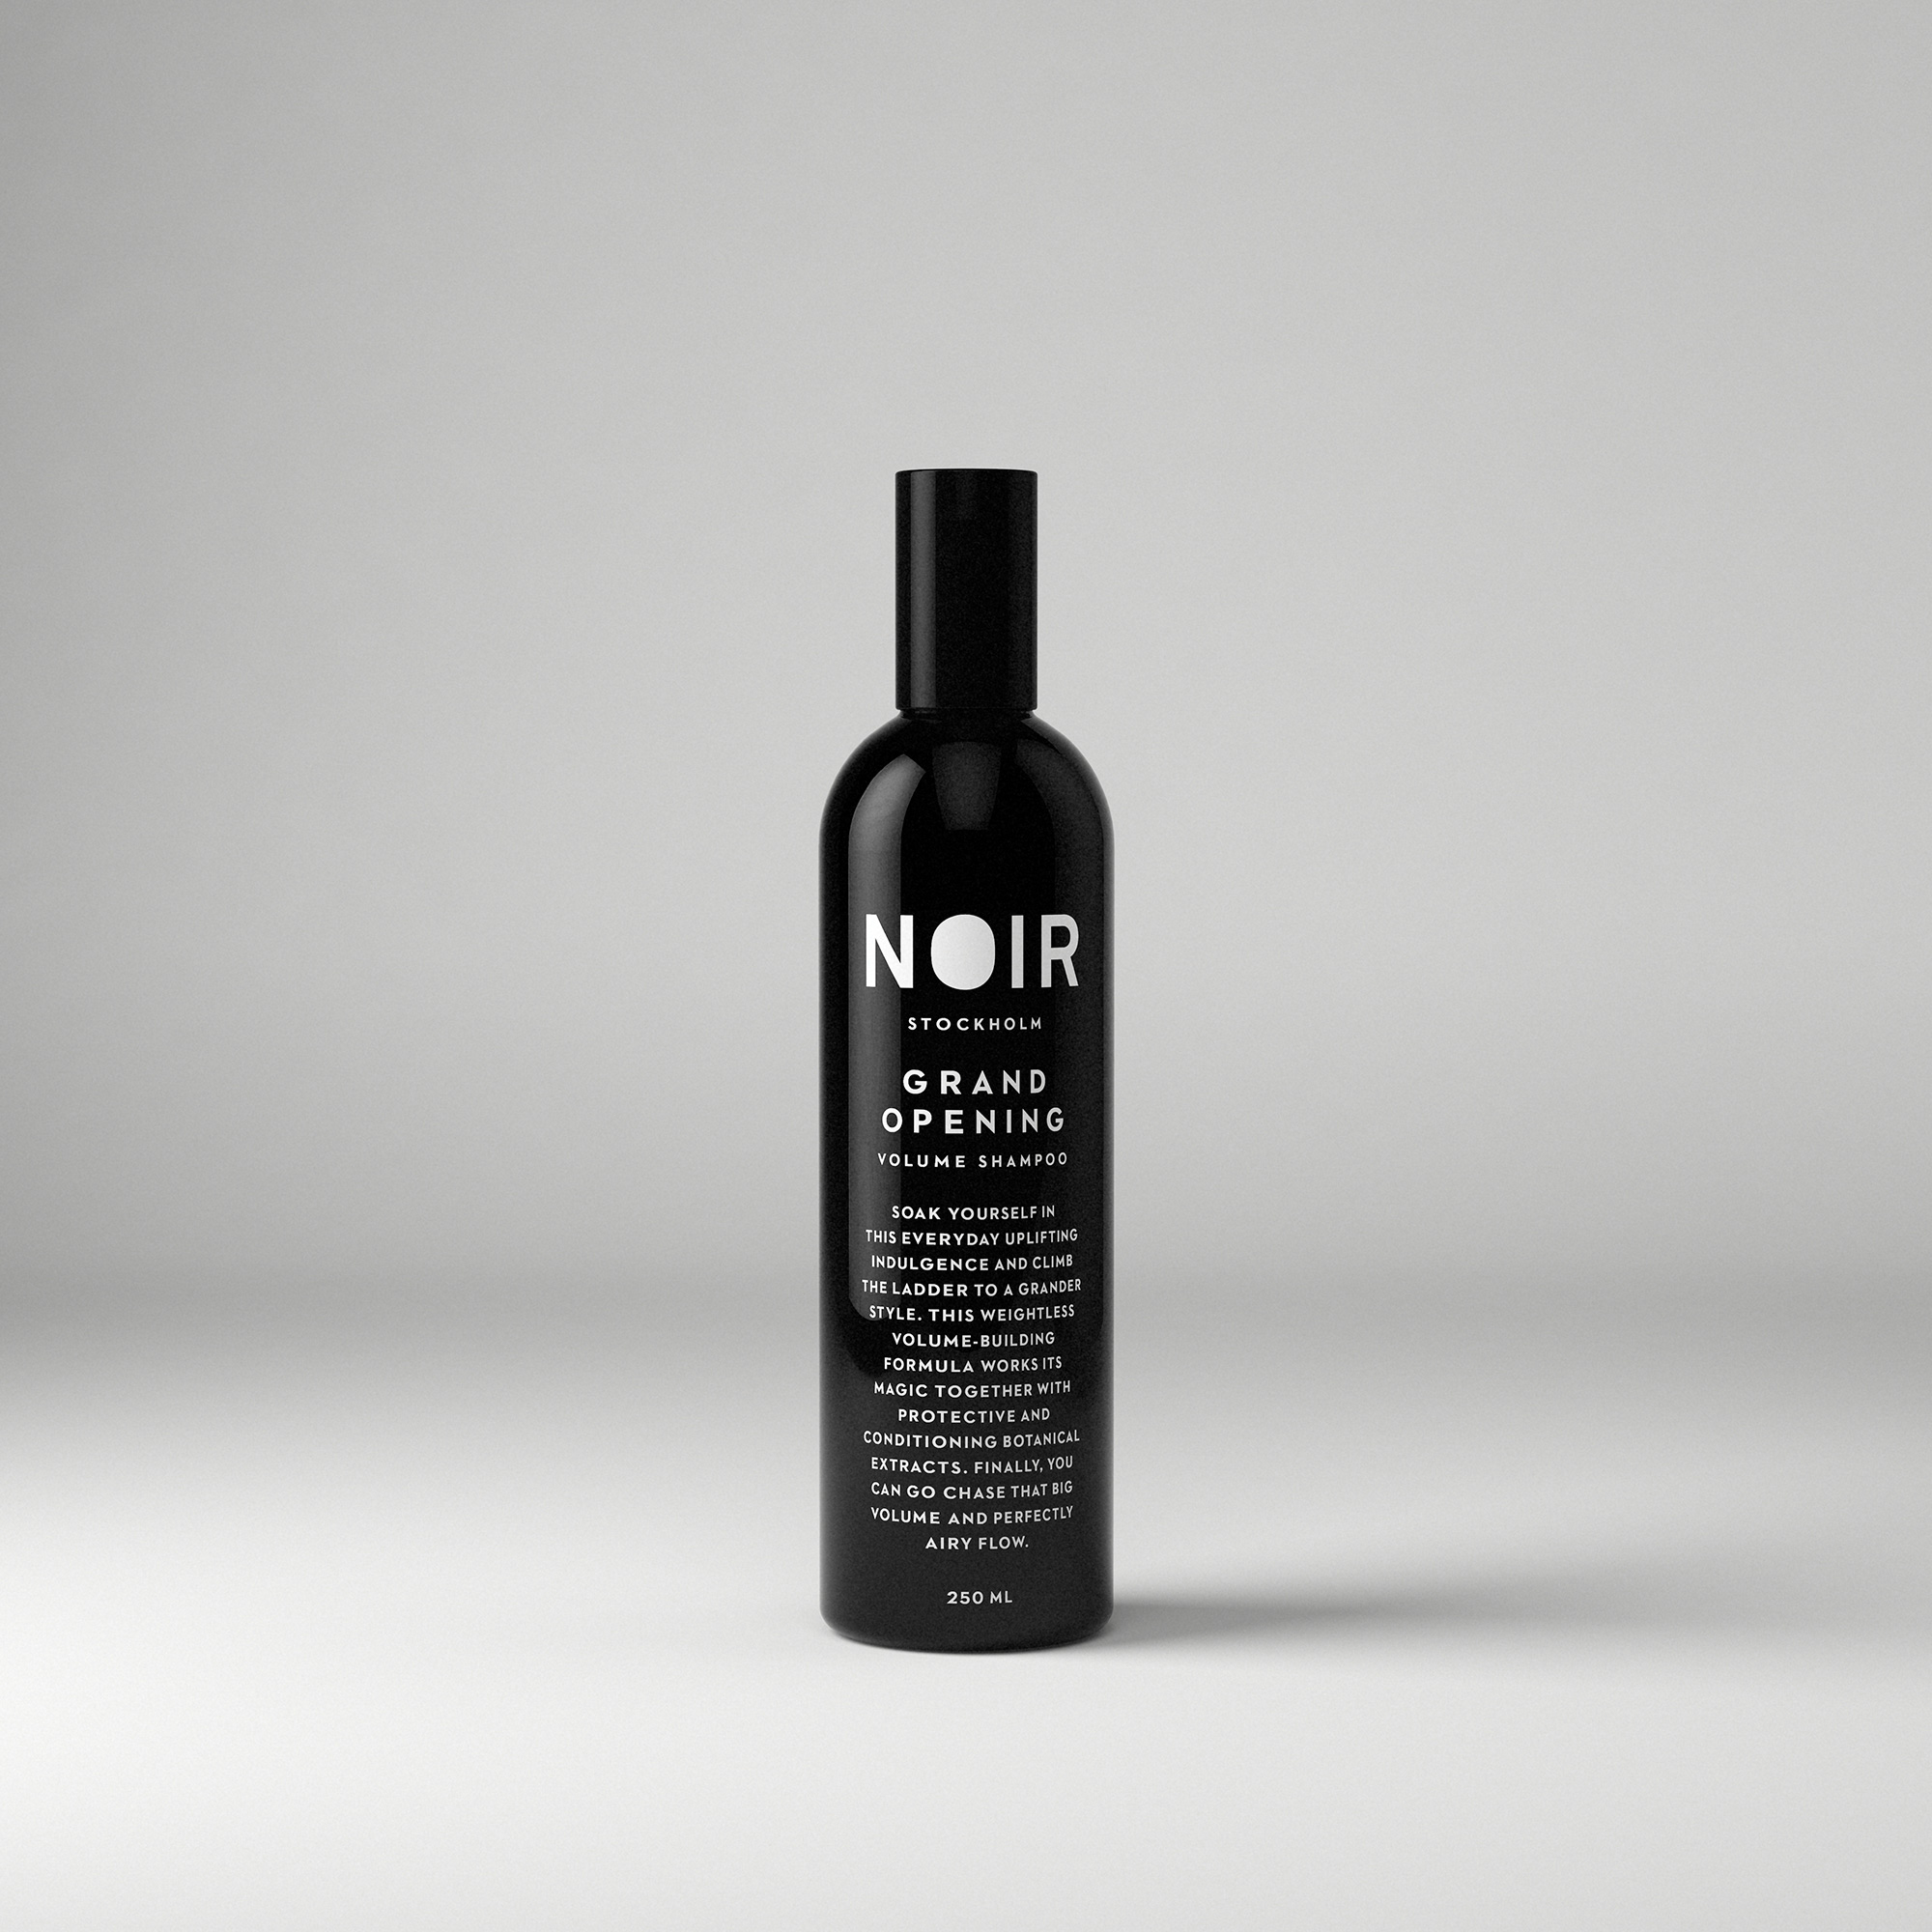 Noir Grand Opening Volume Shampoo